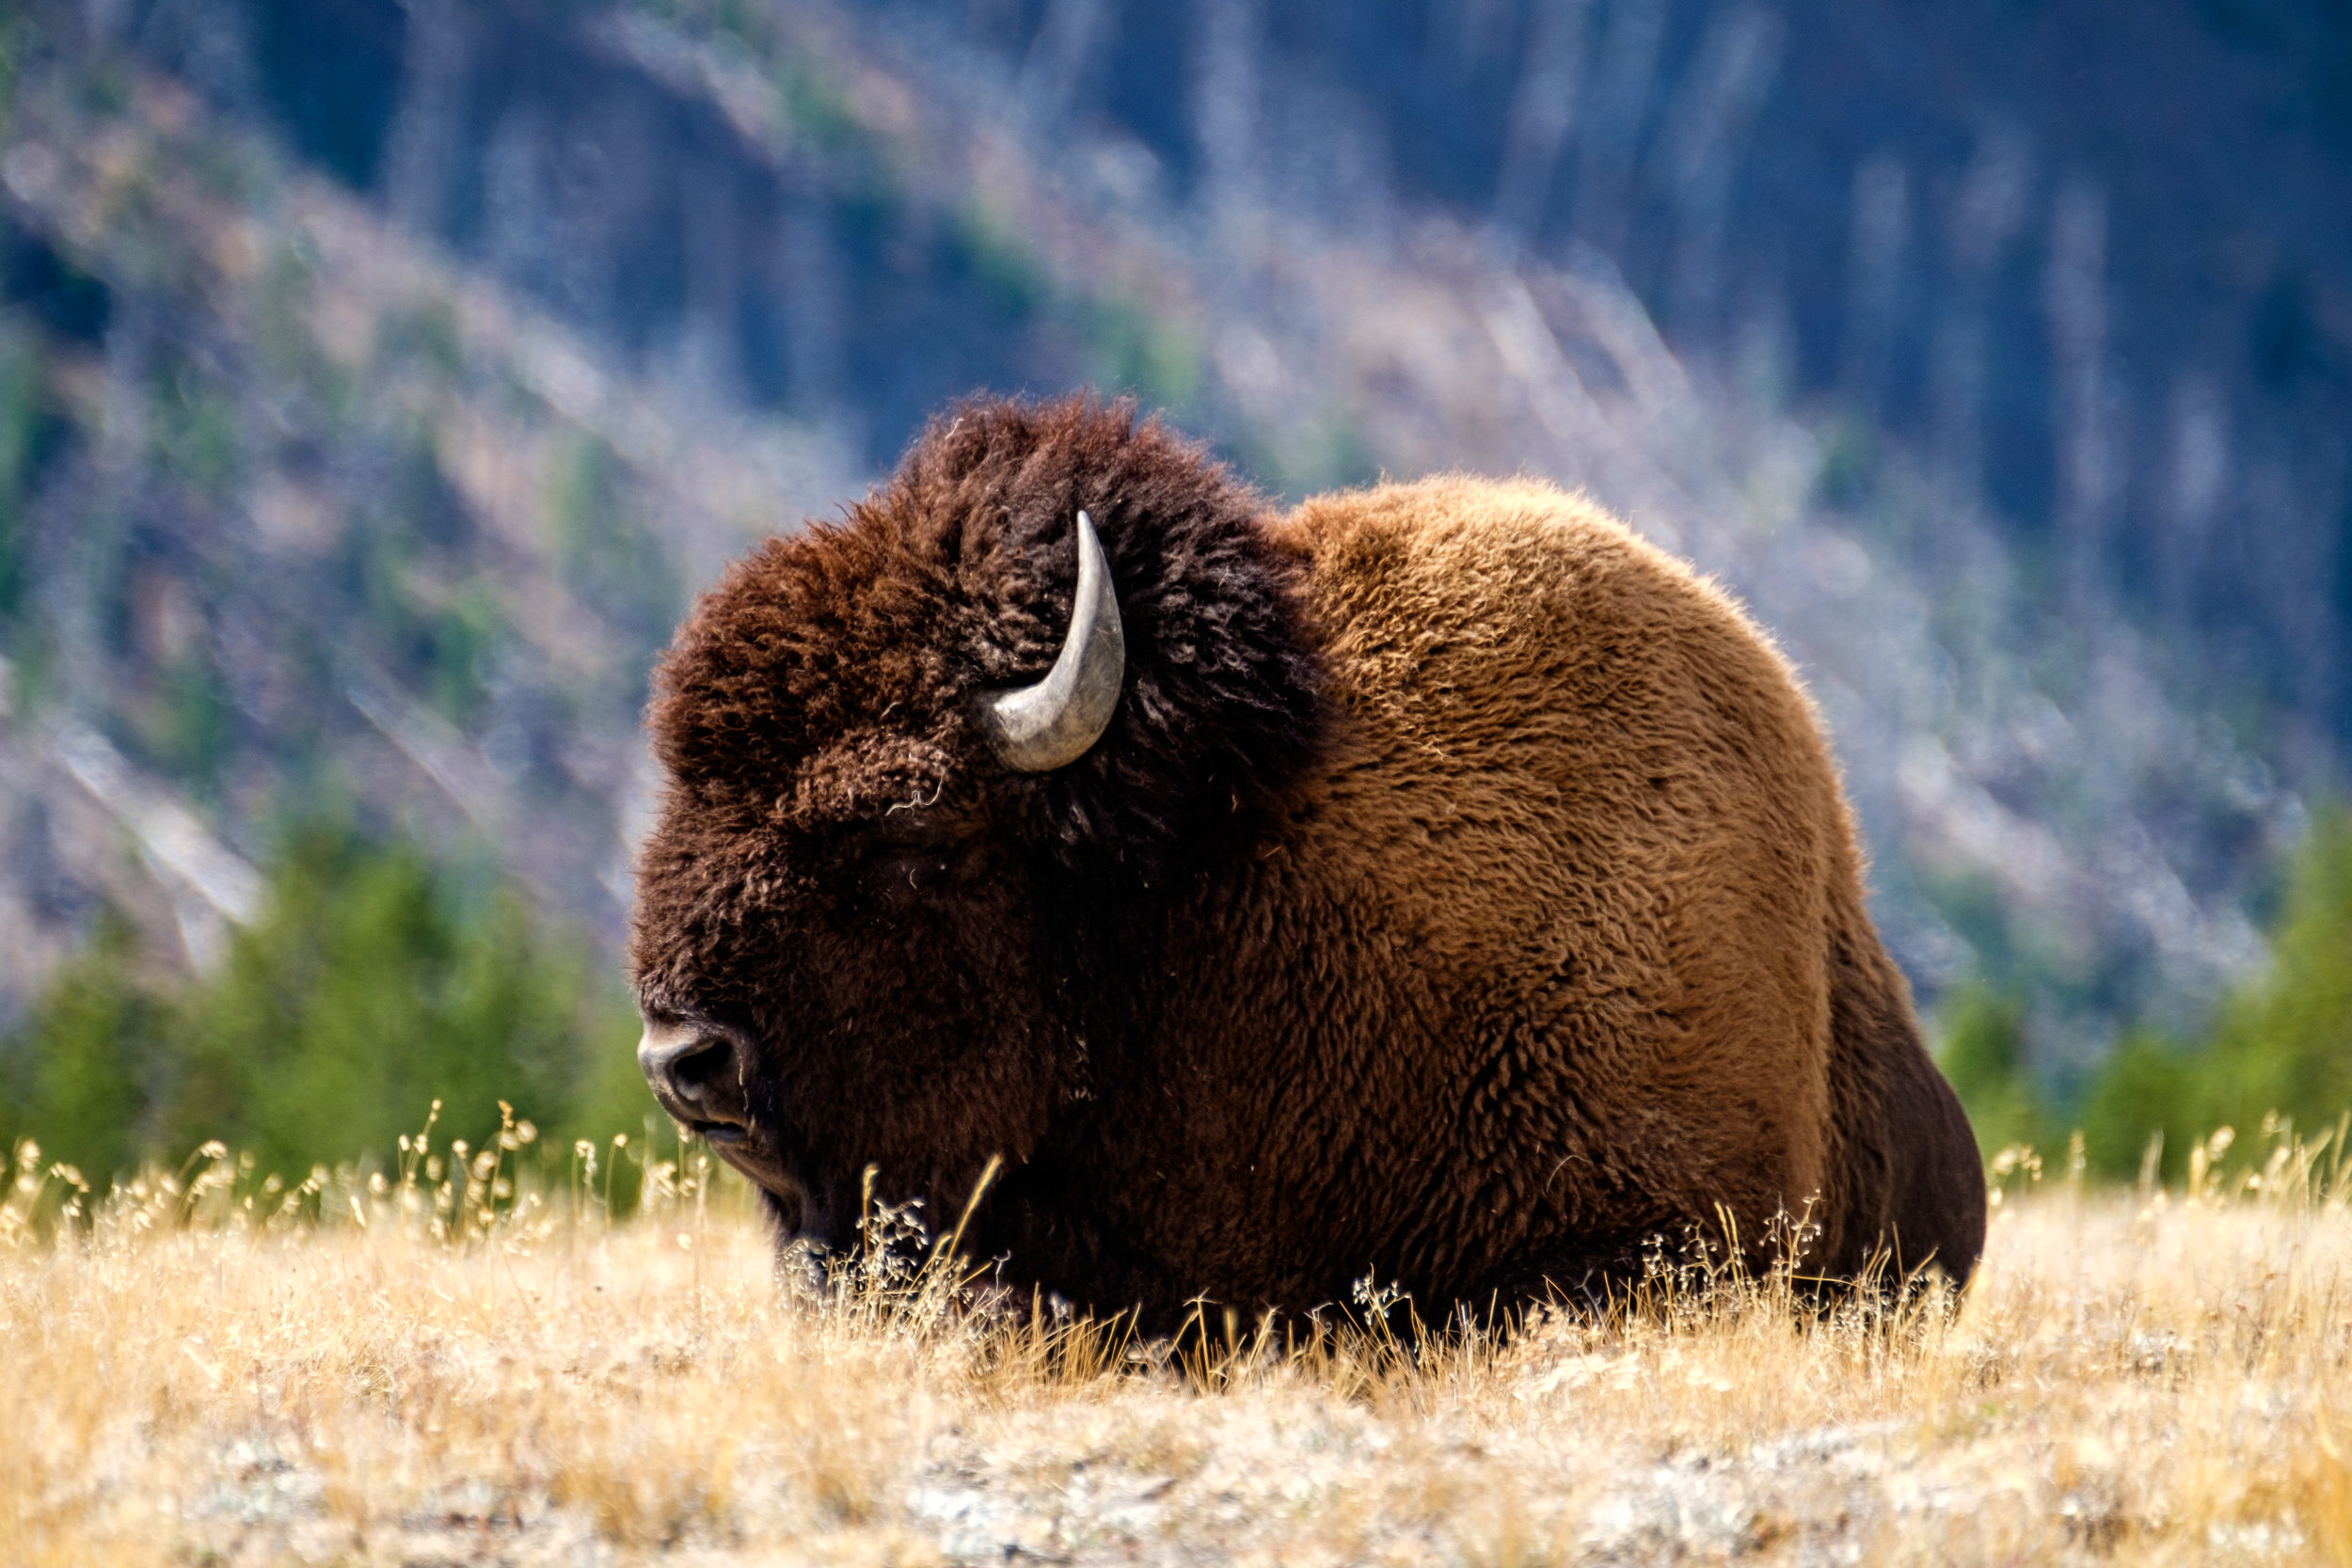 20160919-JI-Yellowstone National Park-_DSF6852-2.jpg